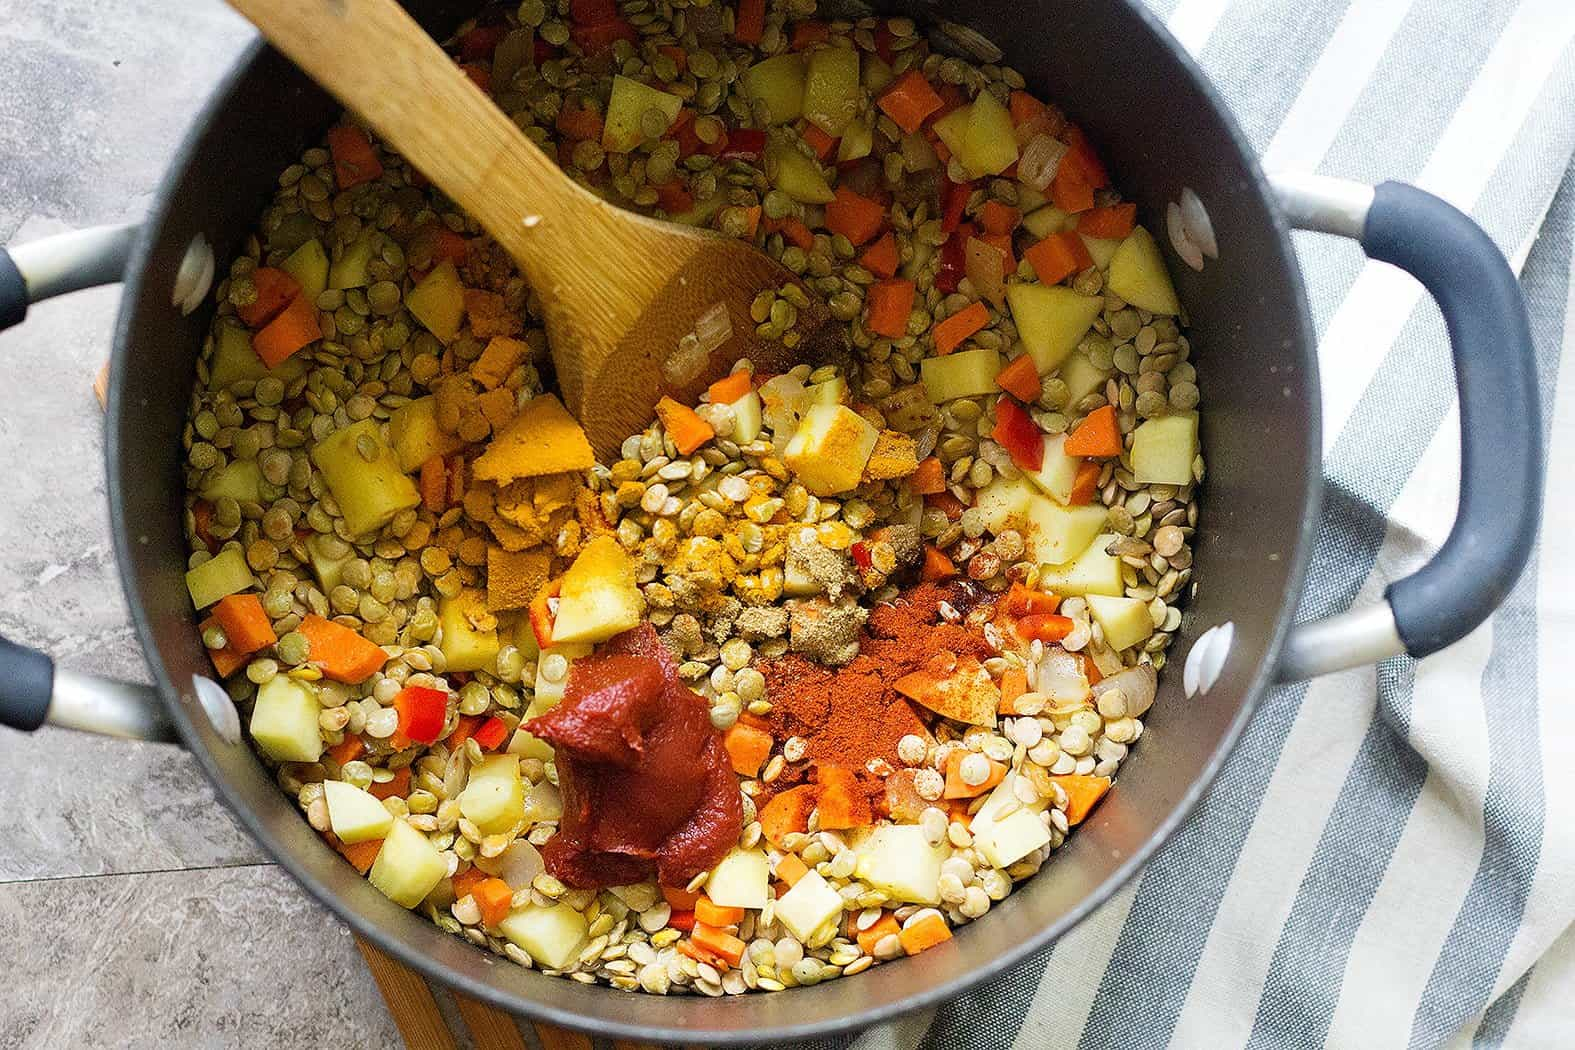 to make this simple vegetarian green lentil and spinach soup recipe saute onion and garlic, then add lentils, carrots, peppers and potatoes with spices.